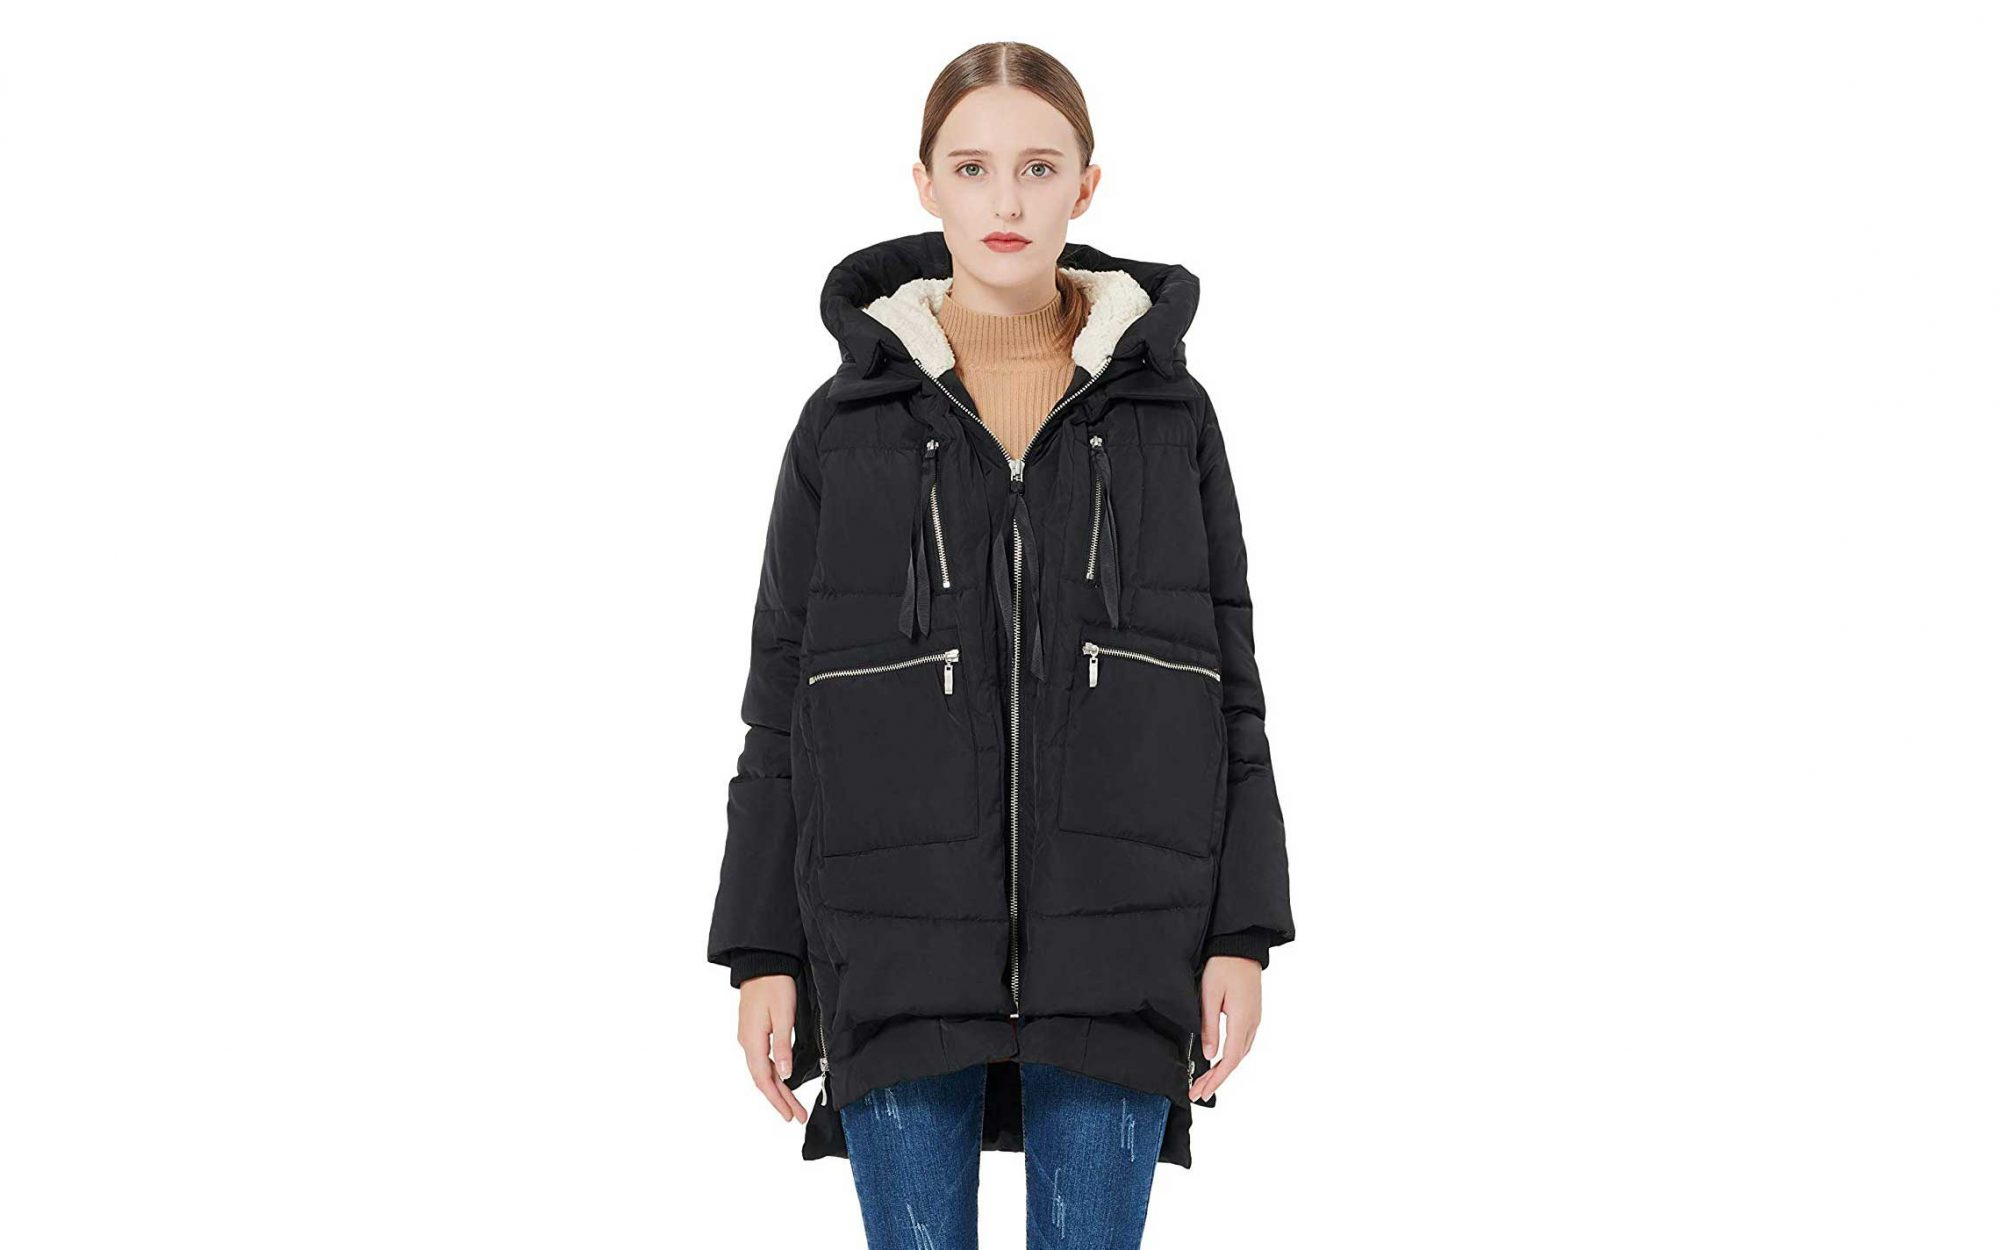 Osprey Coat Amazon Winter